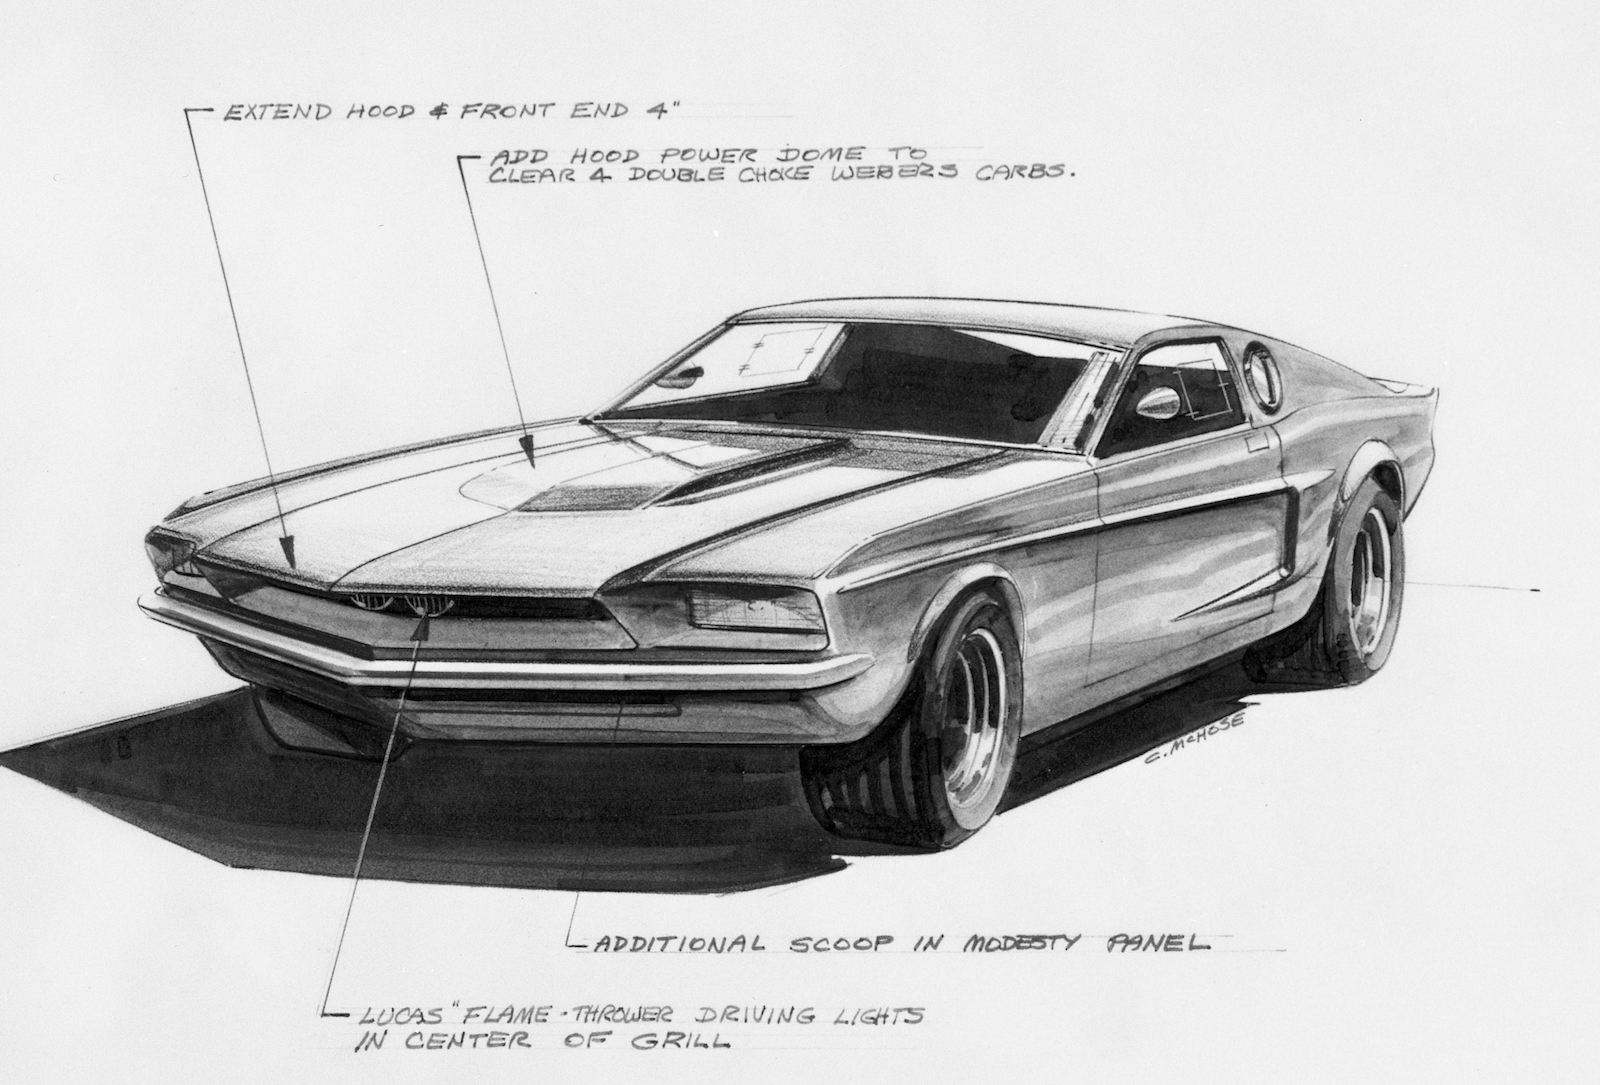 The 1967 Ford Mach I Mustang:  Where Racing Influenced The Breed (Even If Only The Prototype)